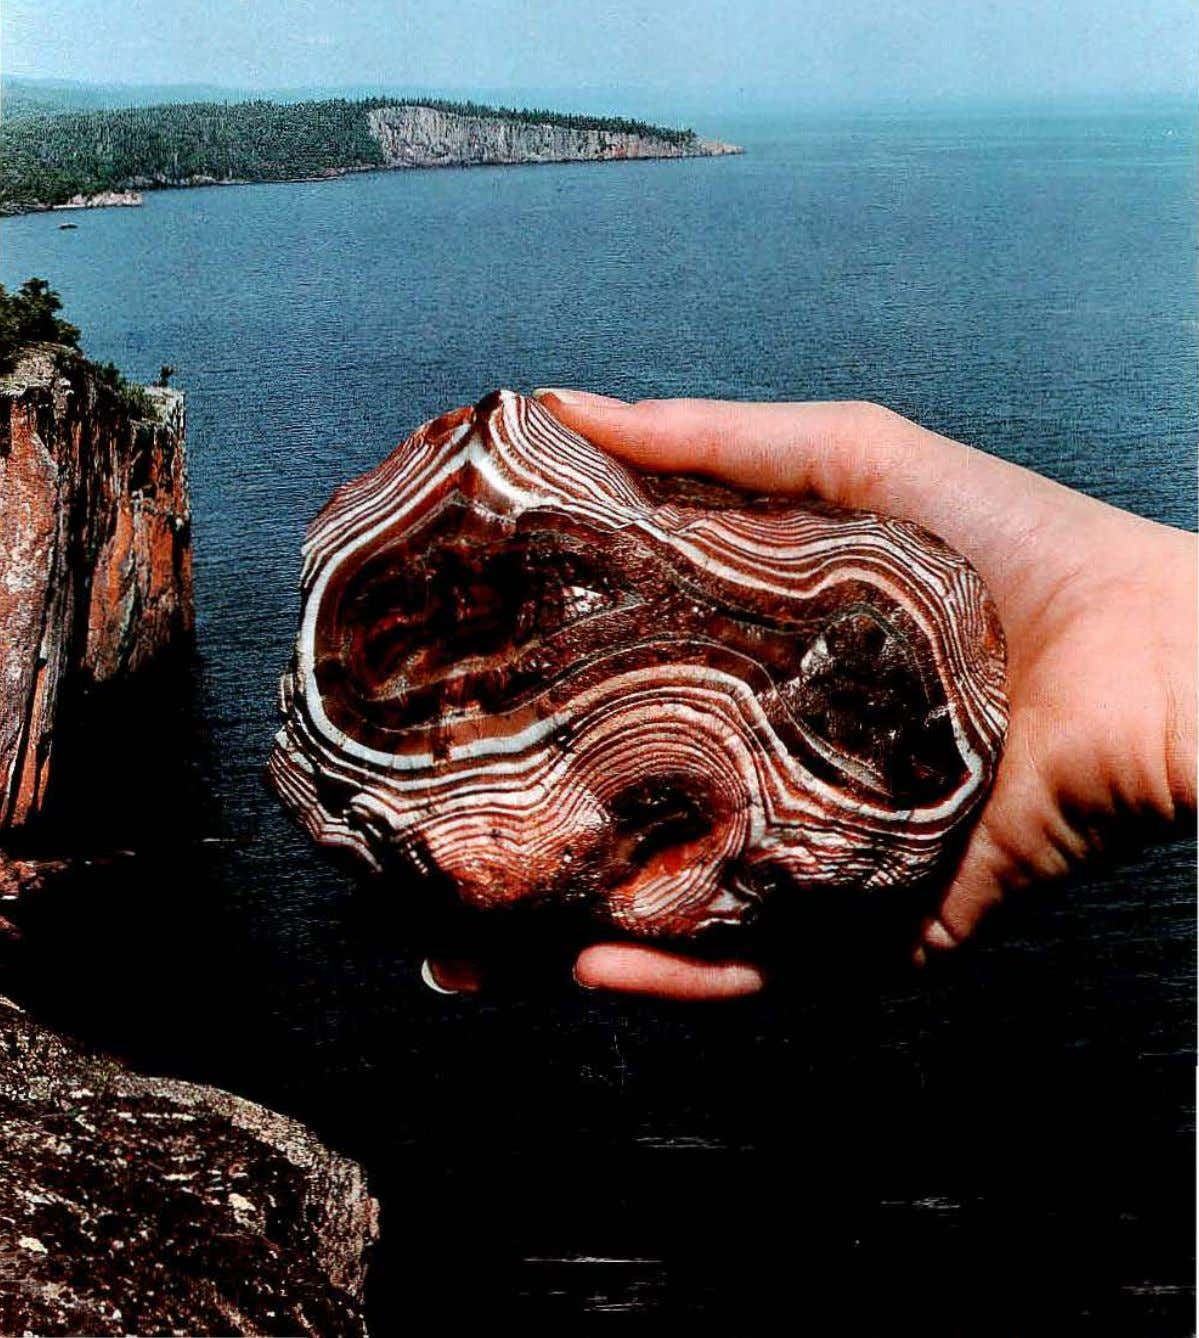 The Lake Superior Agate by Scott F Wolter